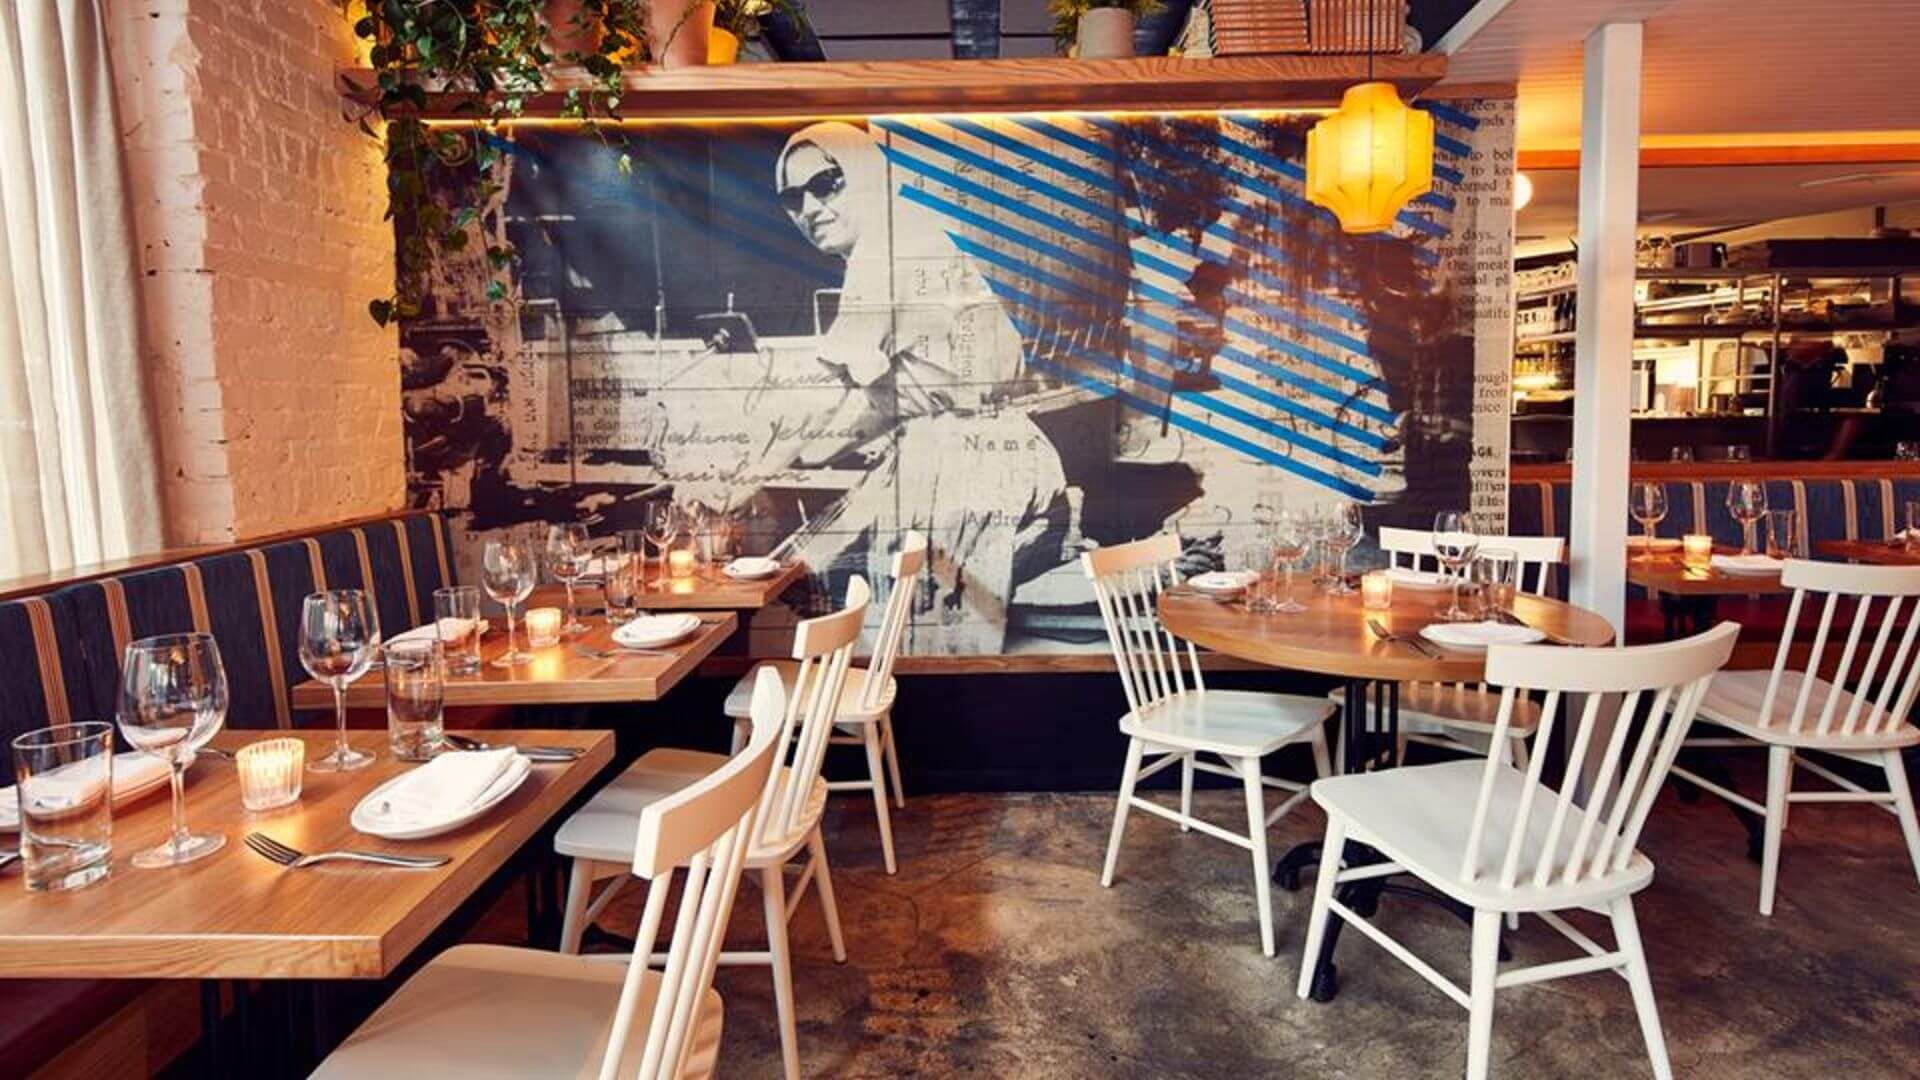 #Balaboosta #UnitedStates #NewYork #Restaurants #travel #travelblogger #travelgram #travelguide #travels #travelling #travelblog #traveladdict #traveladikkt #beautifuldestinations #bucketlist #luxury #luxurylifestyle #luxurytravel #luxurydestinations #lifestyle #lifestyleblogger #beautifulplaces #beautifulplace #beautiful #beautifuldestination